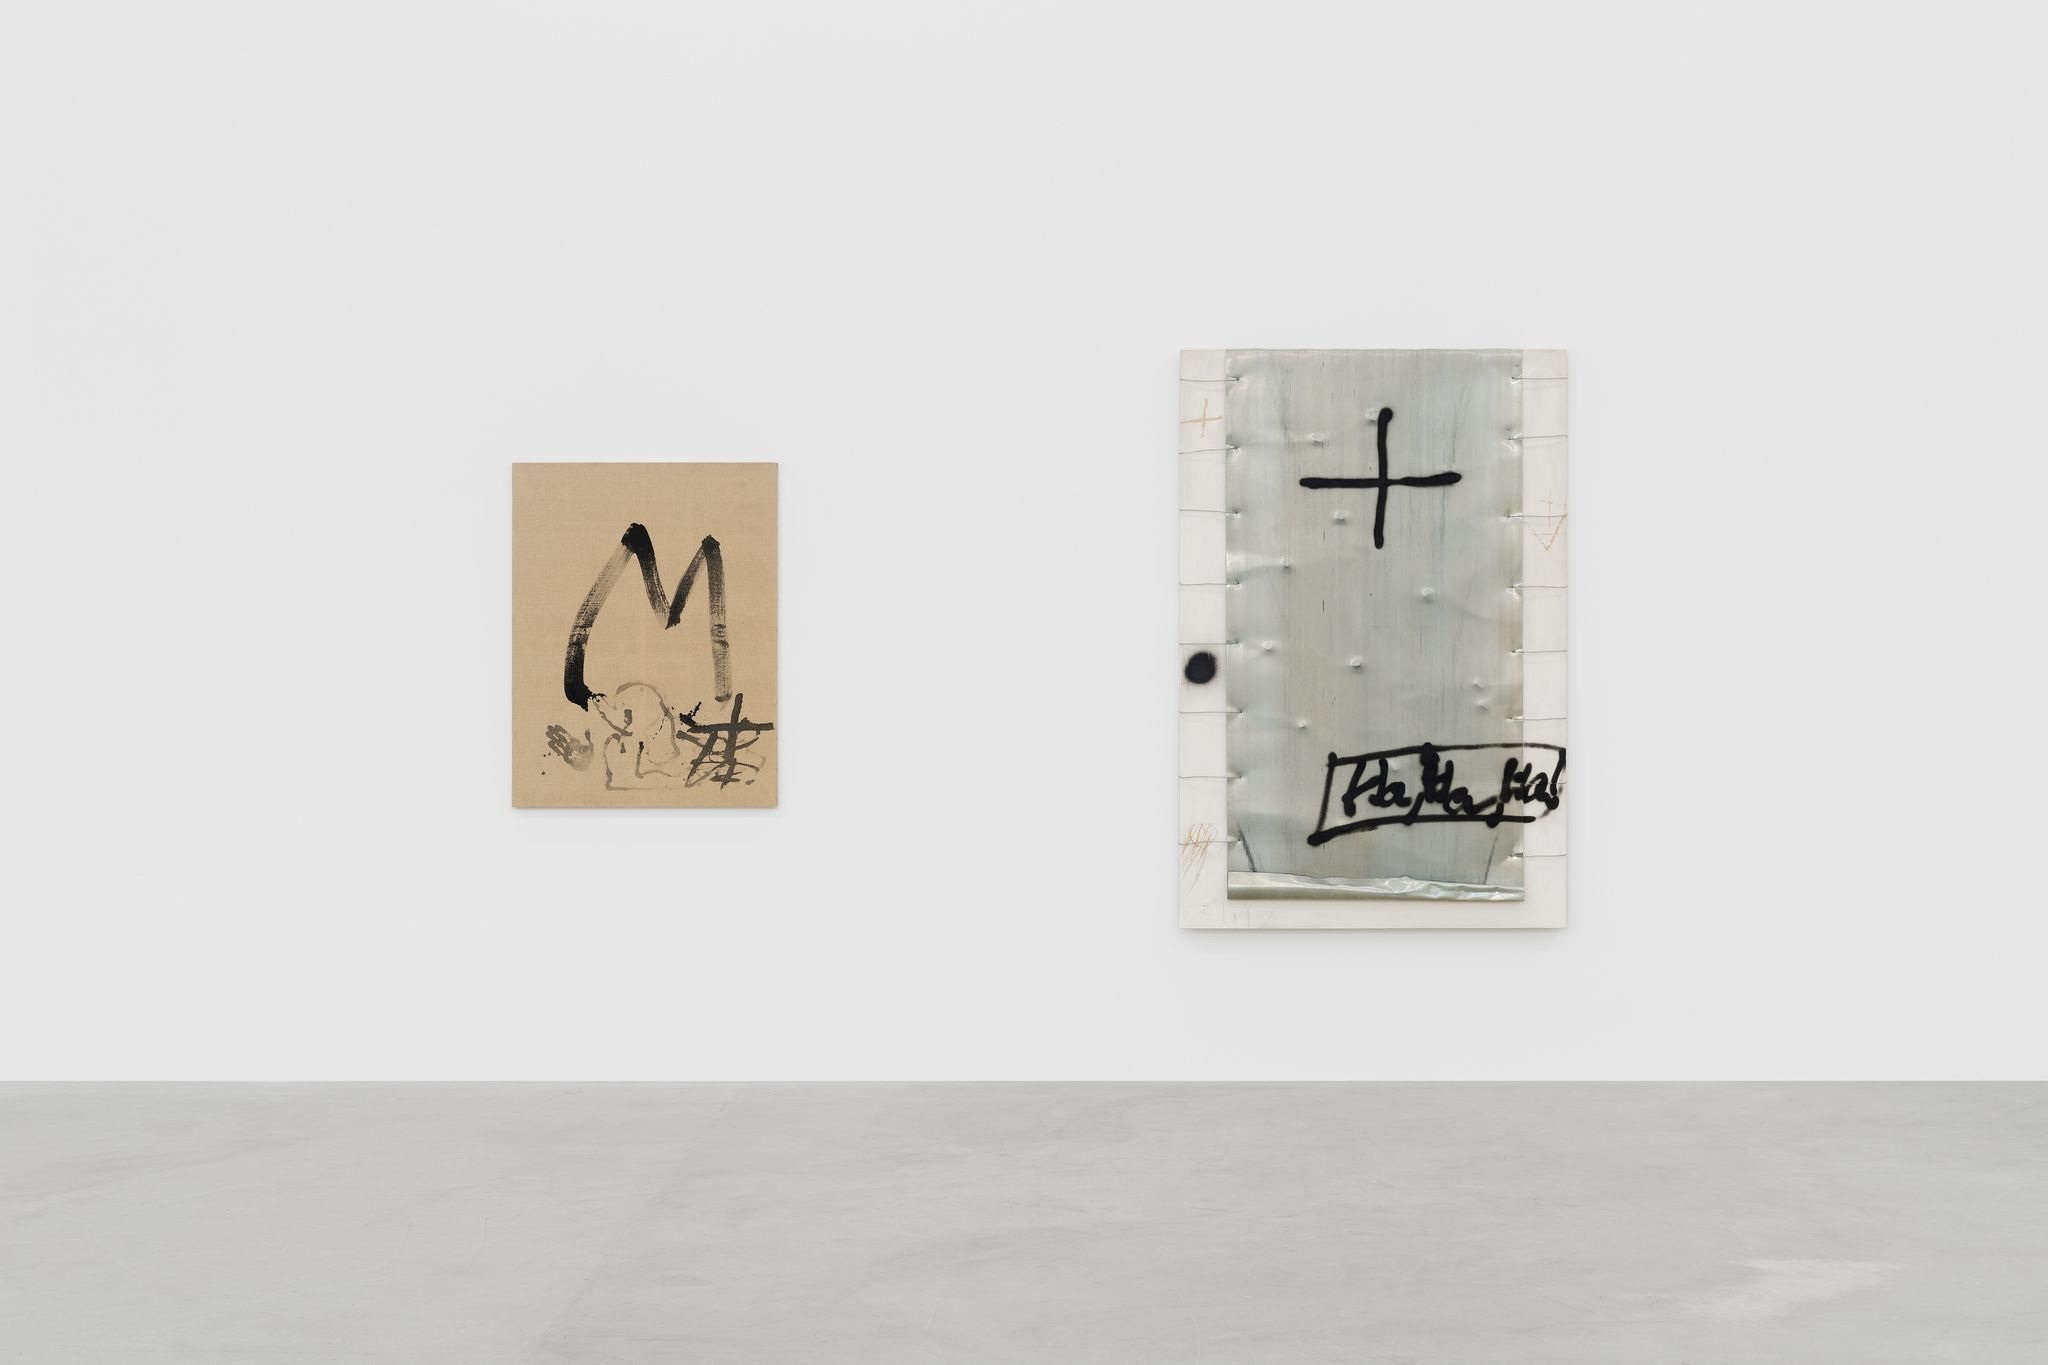 Installation view of Antoni Tàpies' exhibition at Almine Rech Brussels - Courtesy of the Estate of the Artist and Almine Rech © SABAM Belgium 2020 / Photo: Hugard & Vanoverschelde photography